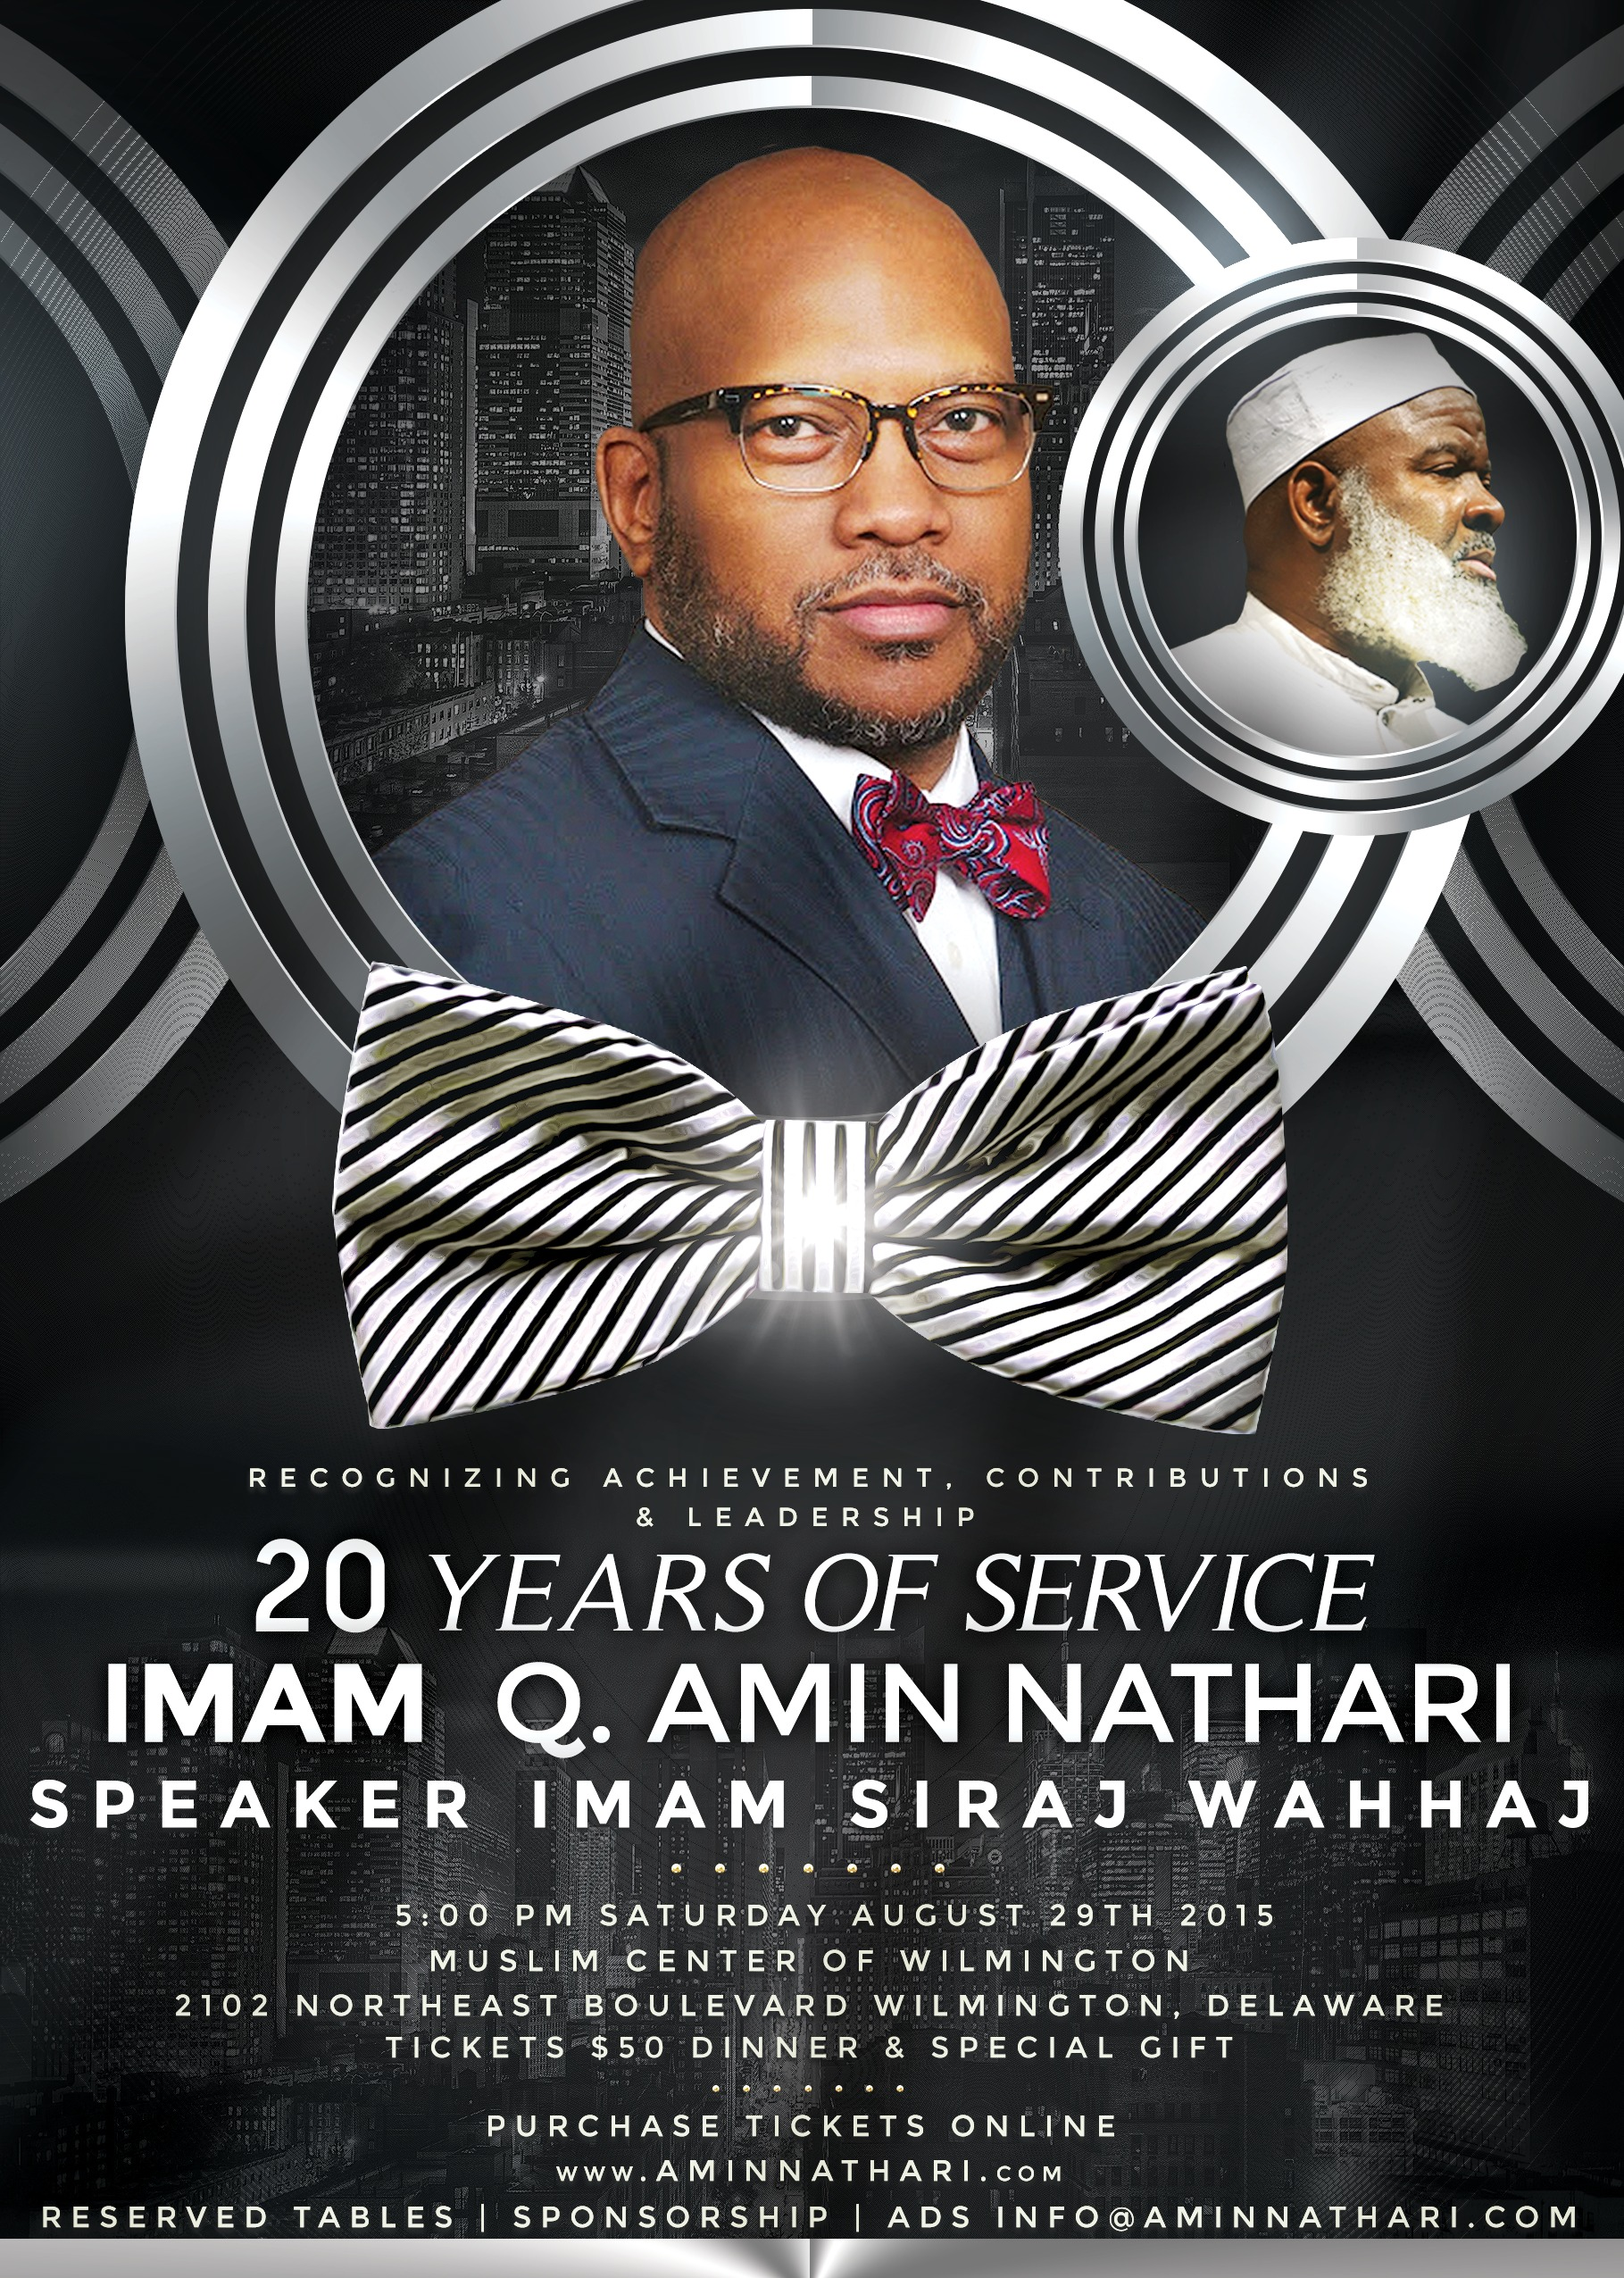 20-years-of-service-imam-amin-nathari-imam-siraj-wahhaj-mecca-digitale-finale-2-re